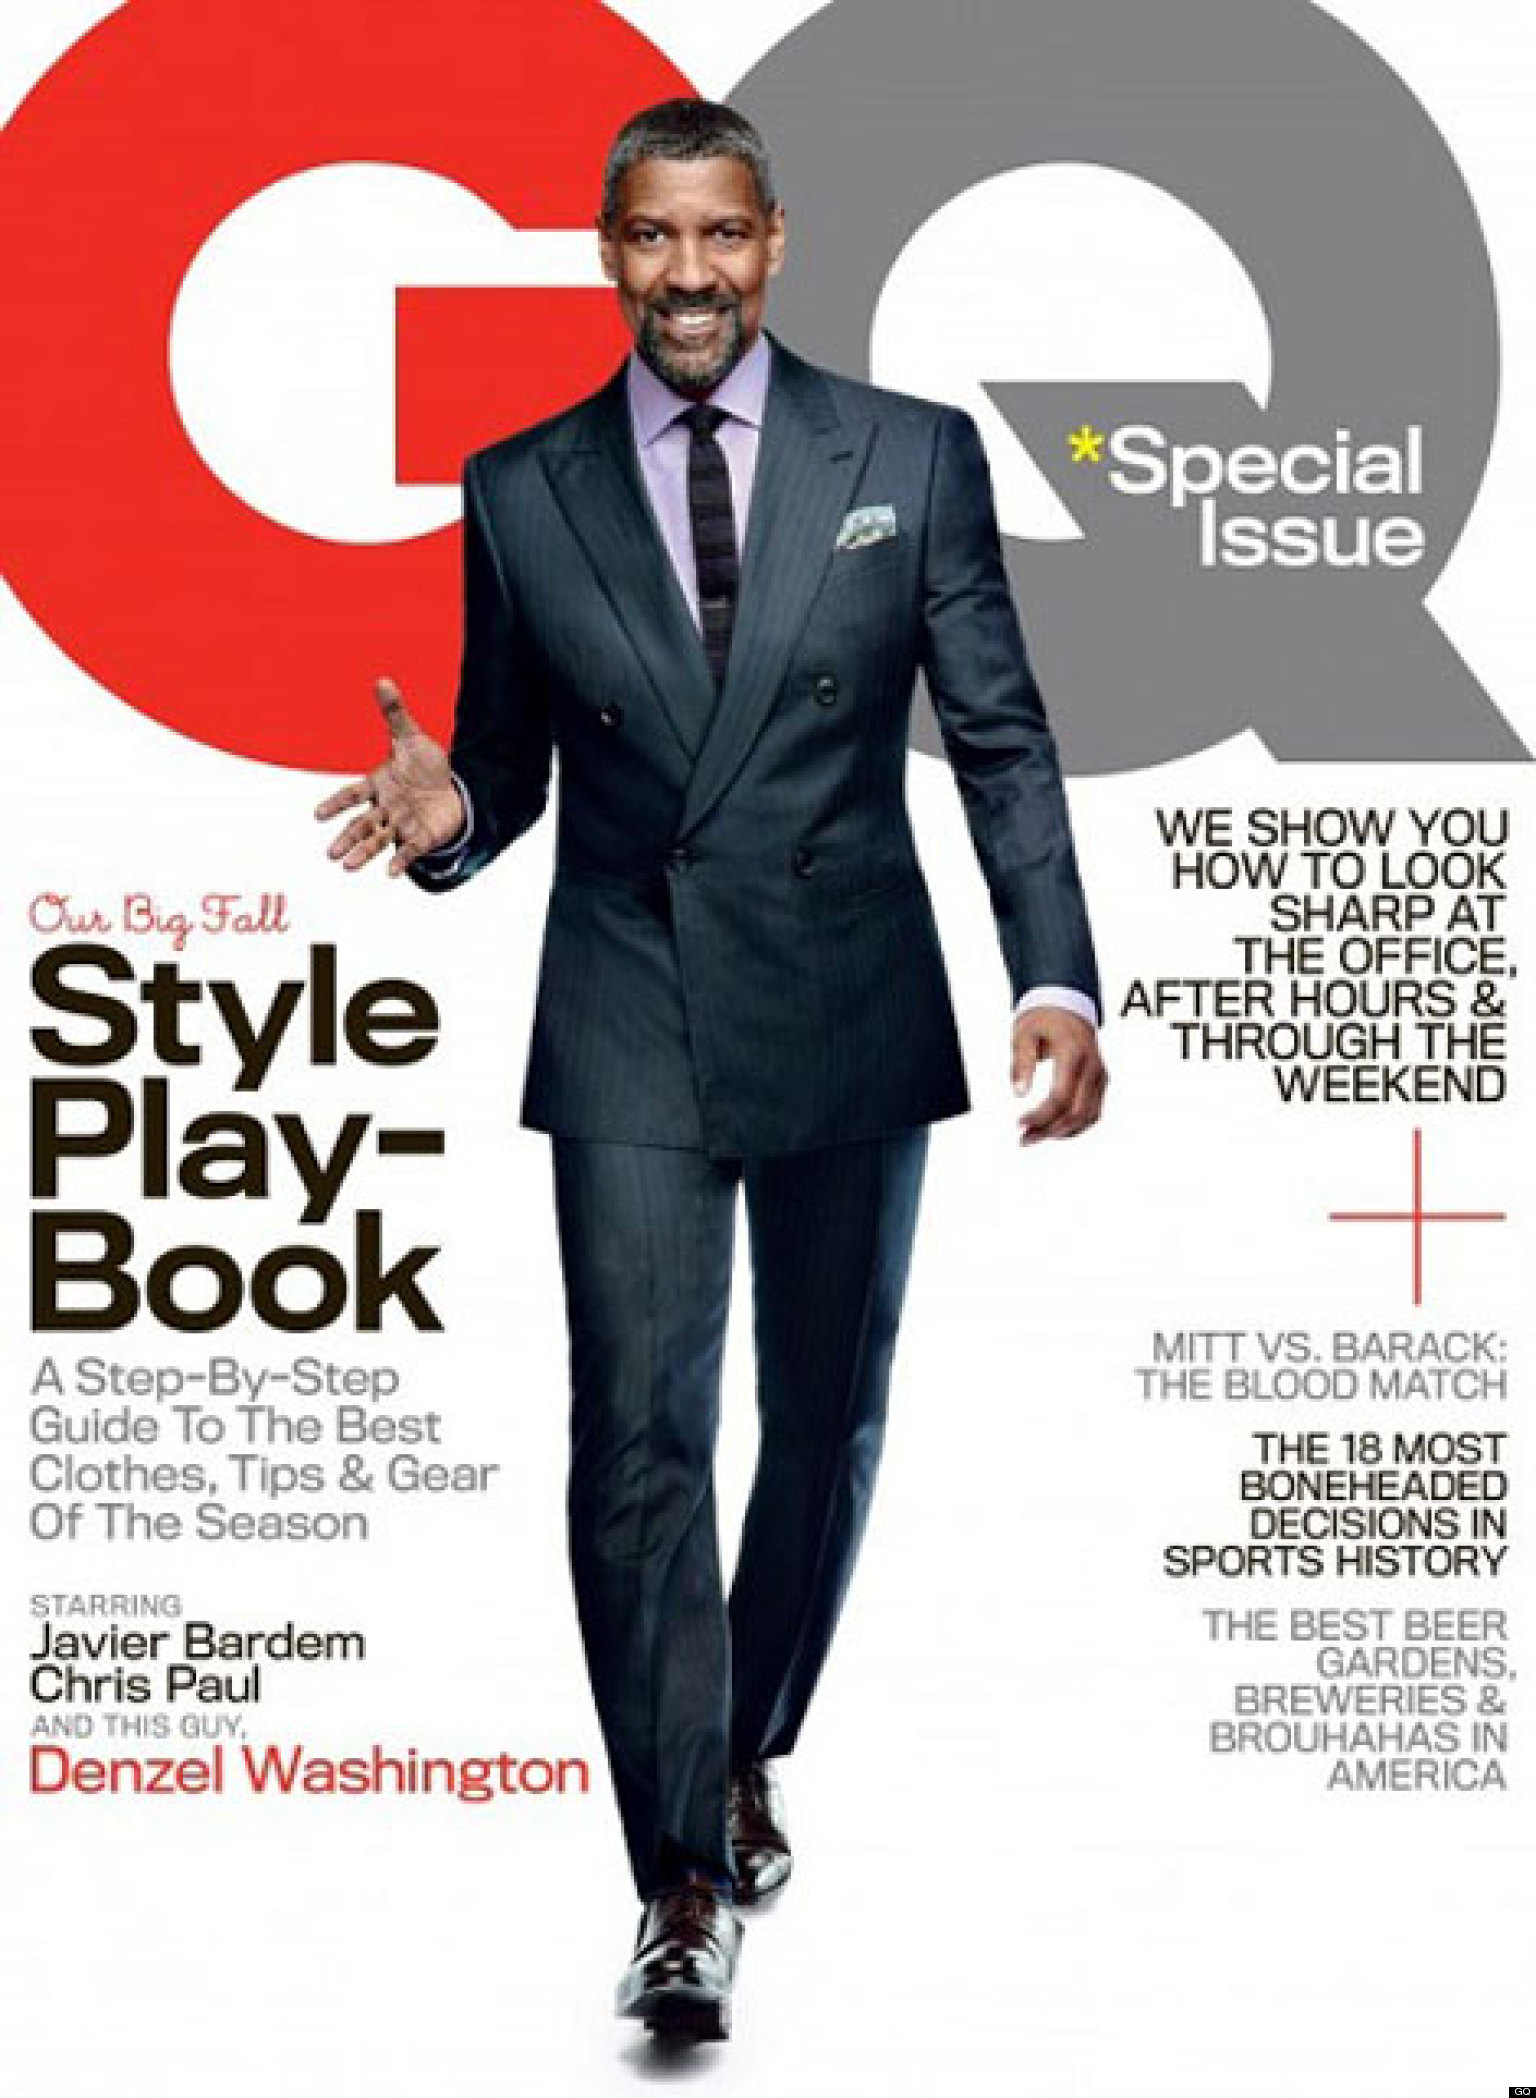 Gq Magazine The Secrets Of R Kelly: Denzel Washington Talks Whitney Houston Death, President